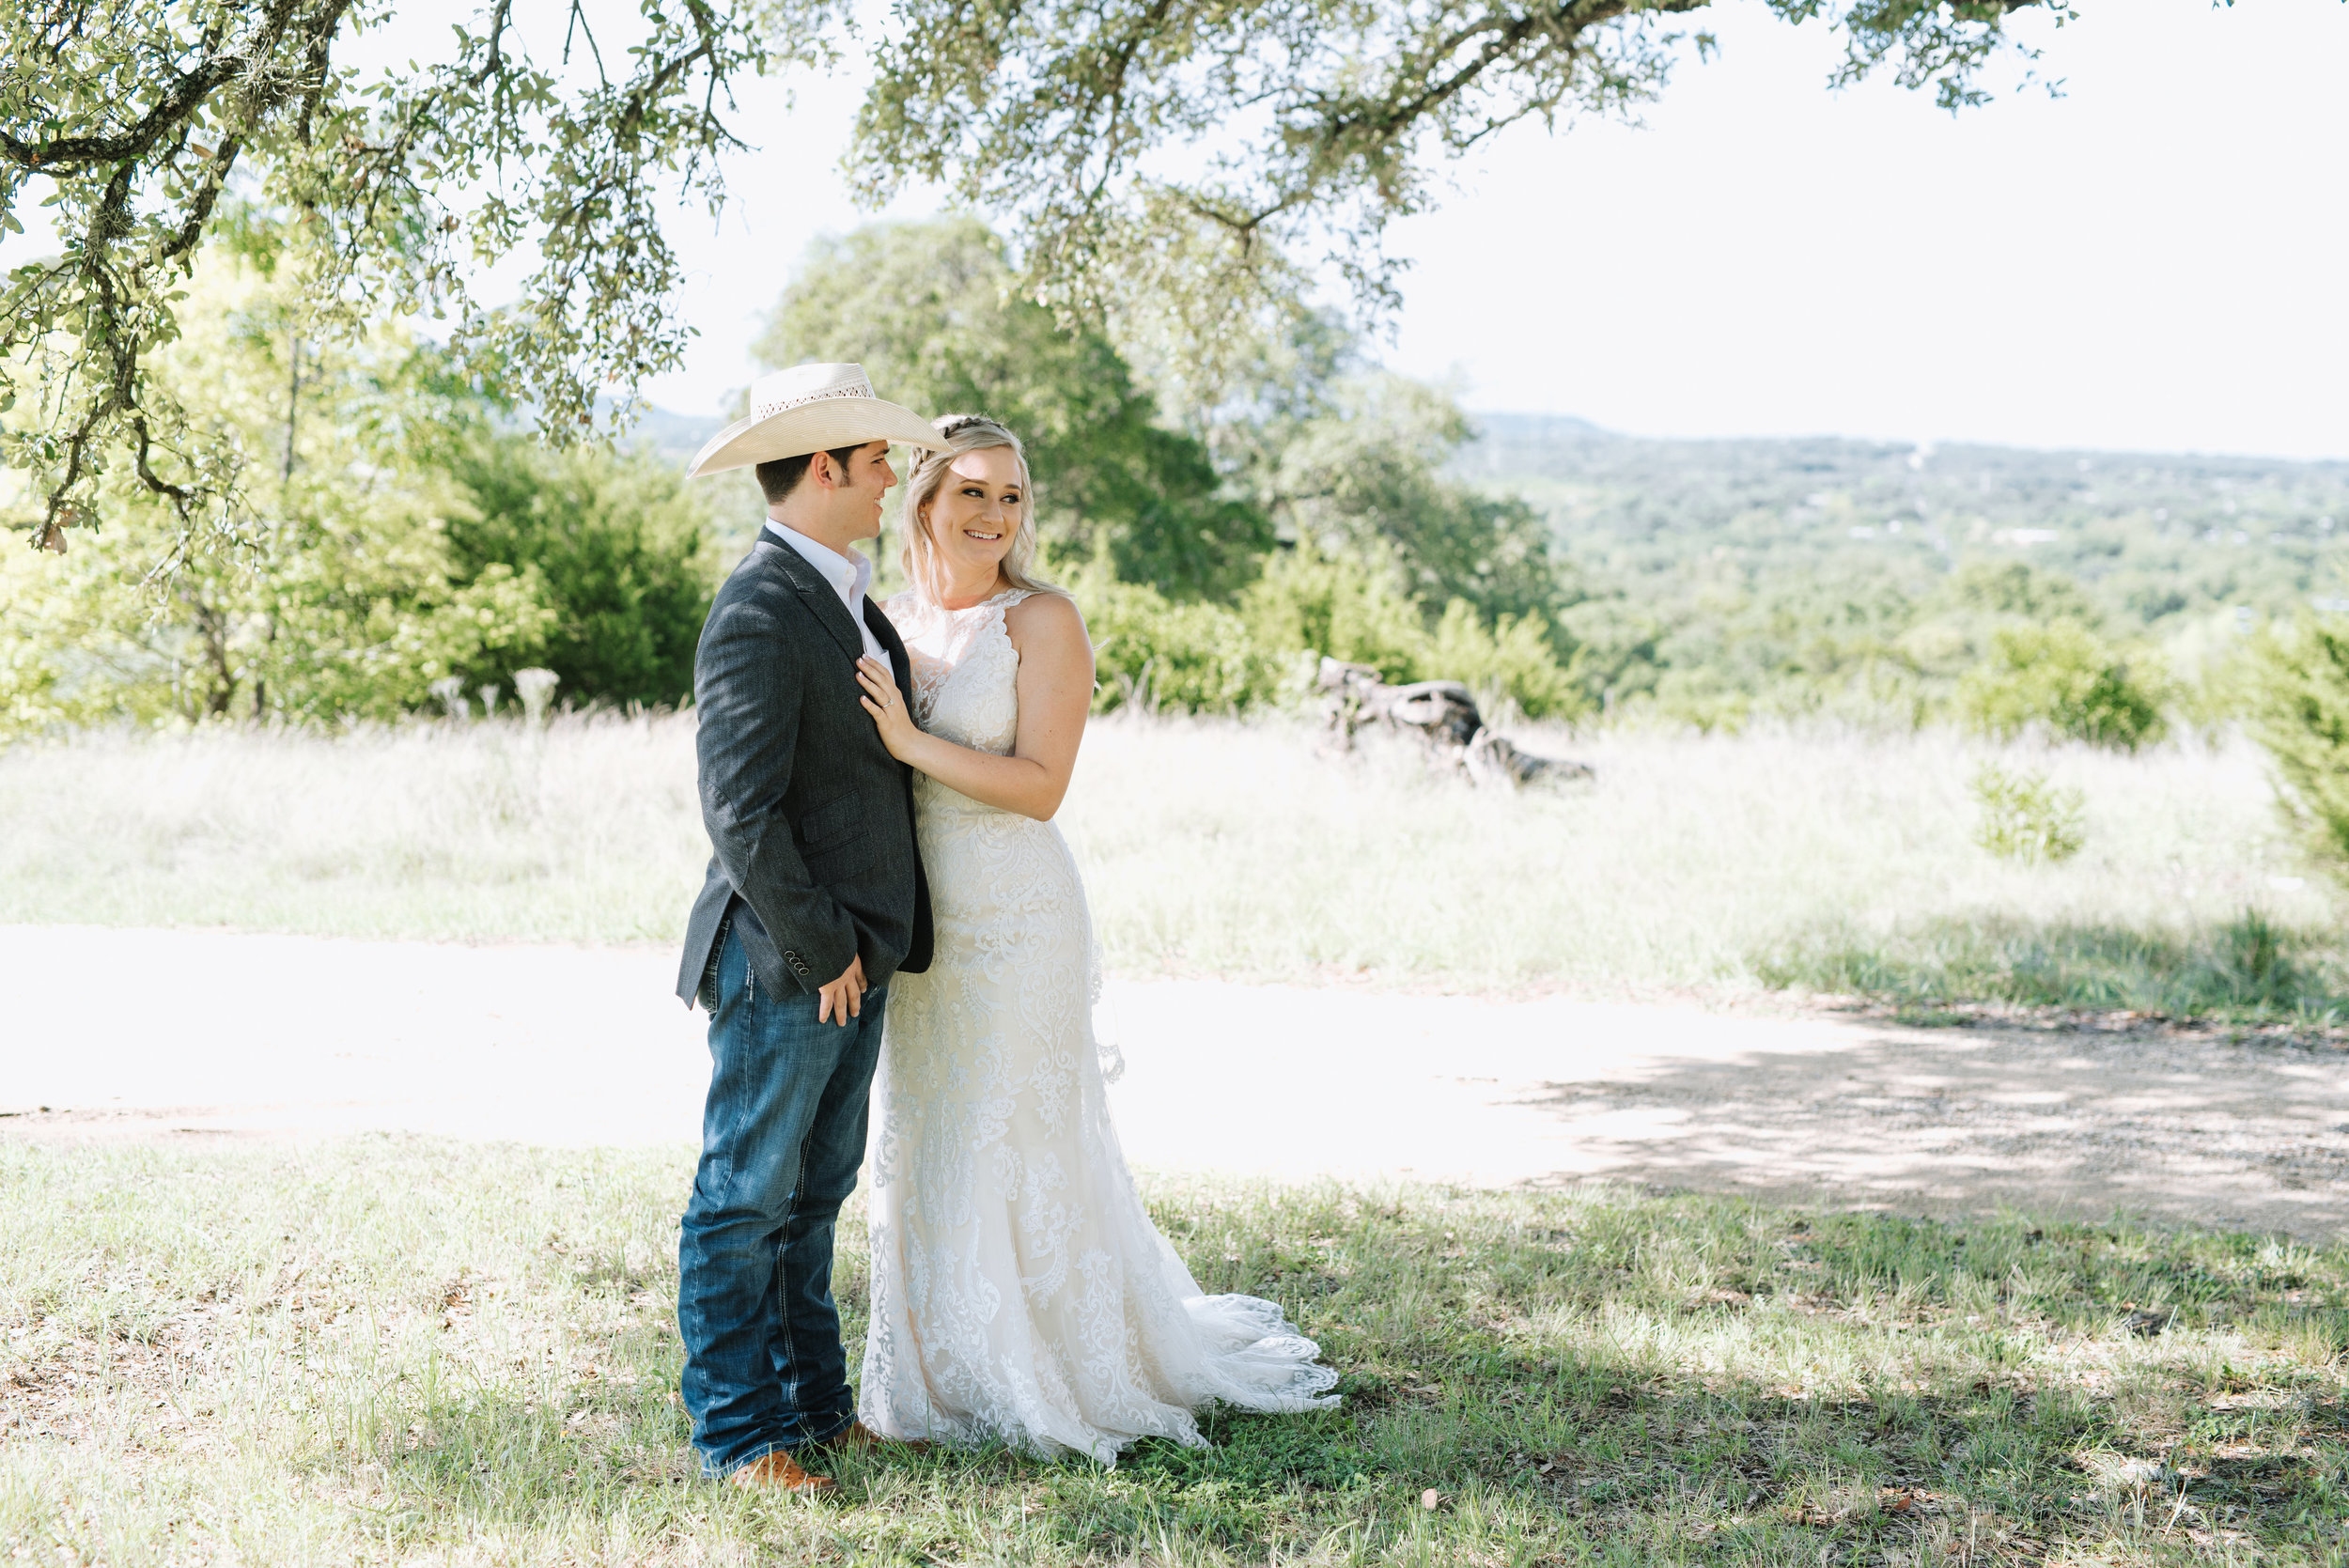 mcclure-hillcountry-wedding-couple-photo-sojourn-art-and-ink.jpg